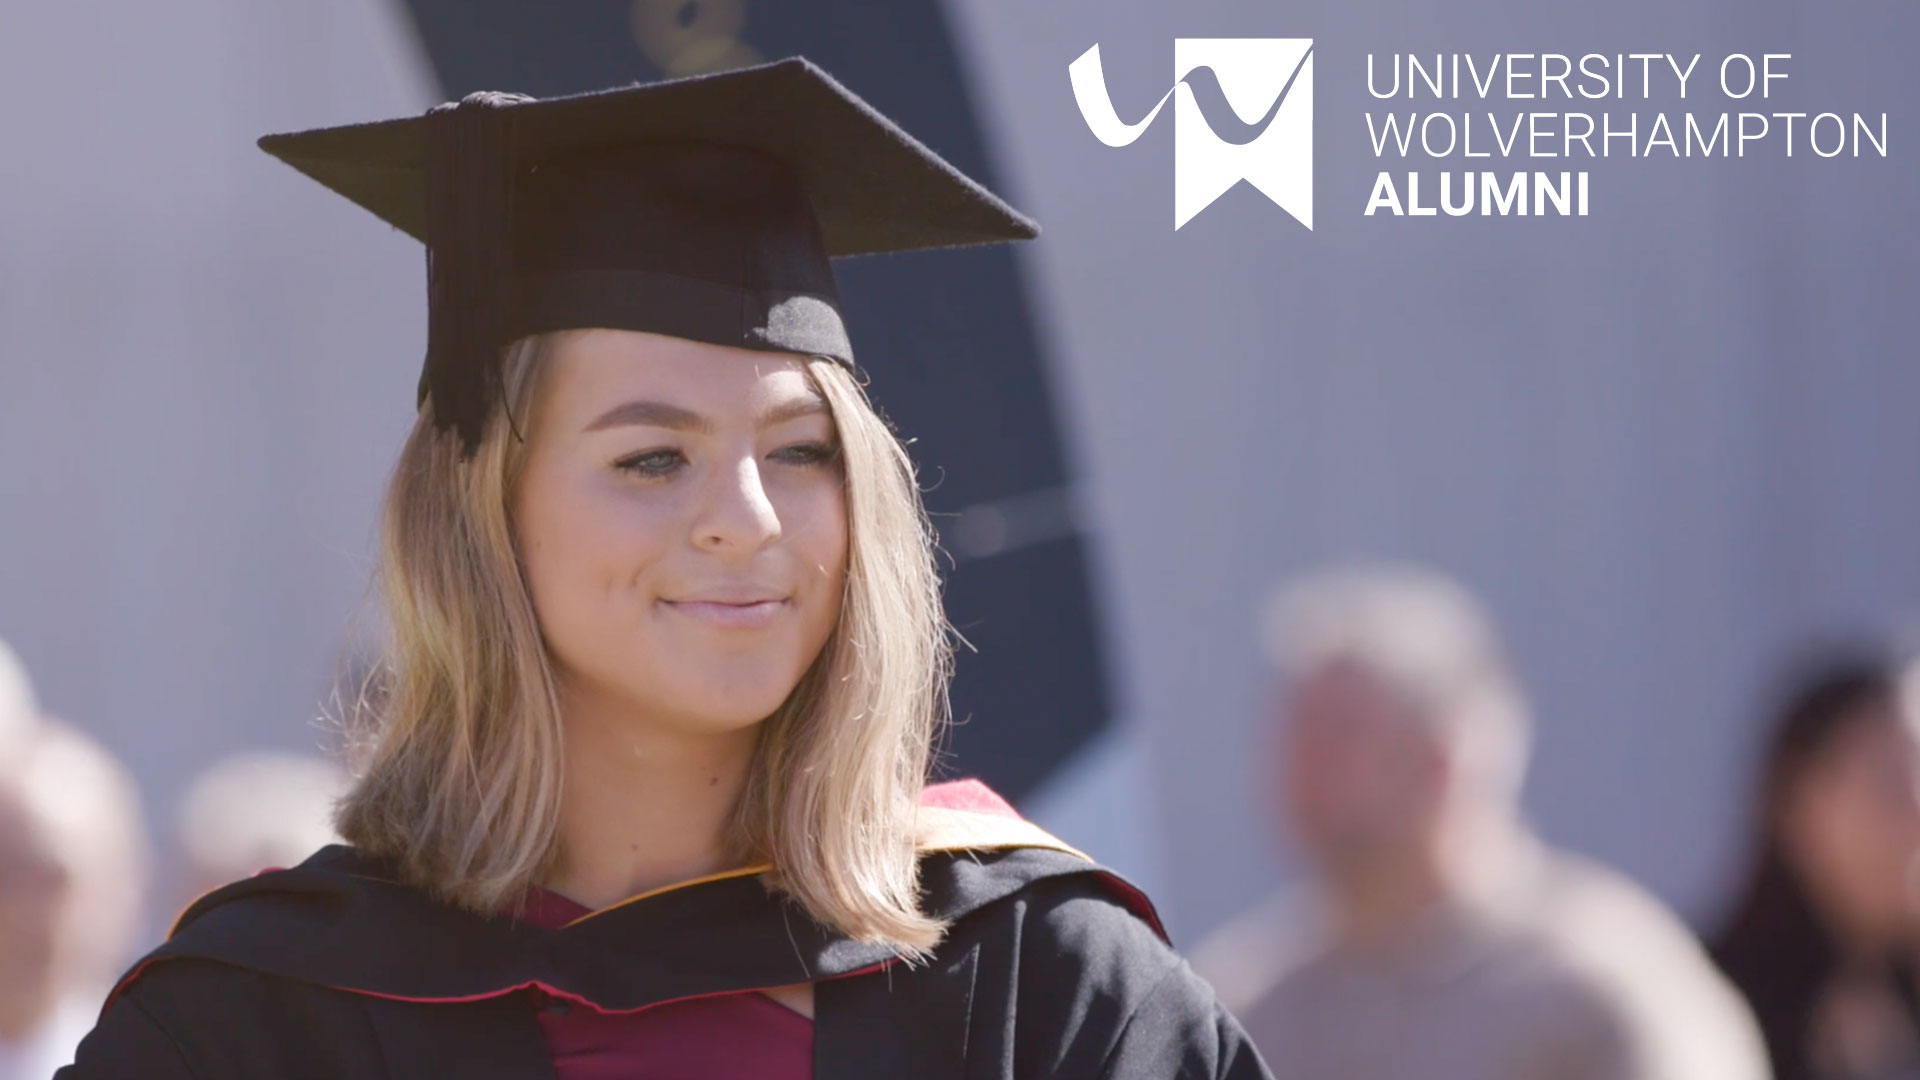 UoW-Alumni-Promotional-Video-Production